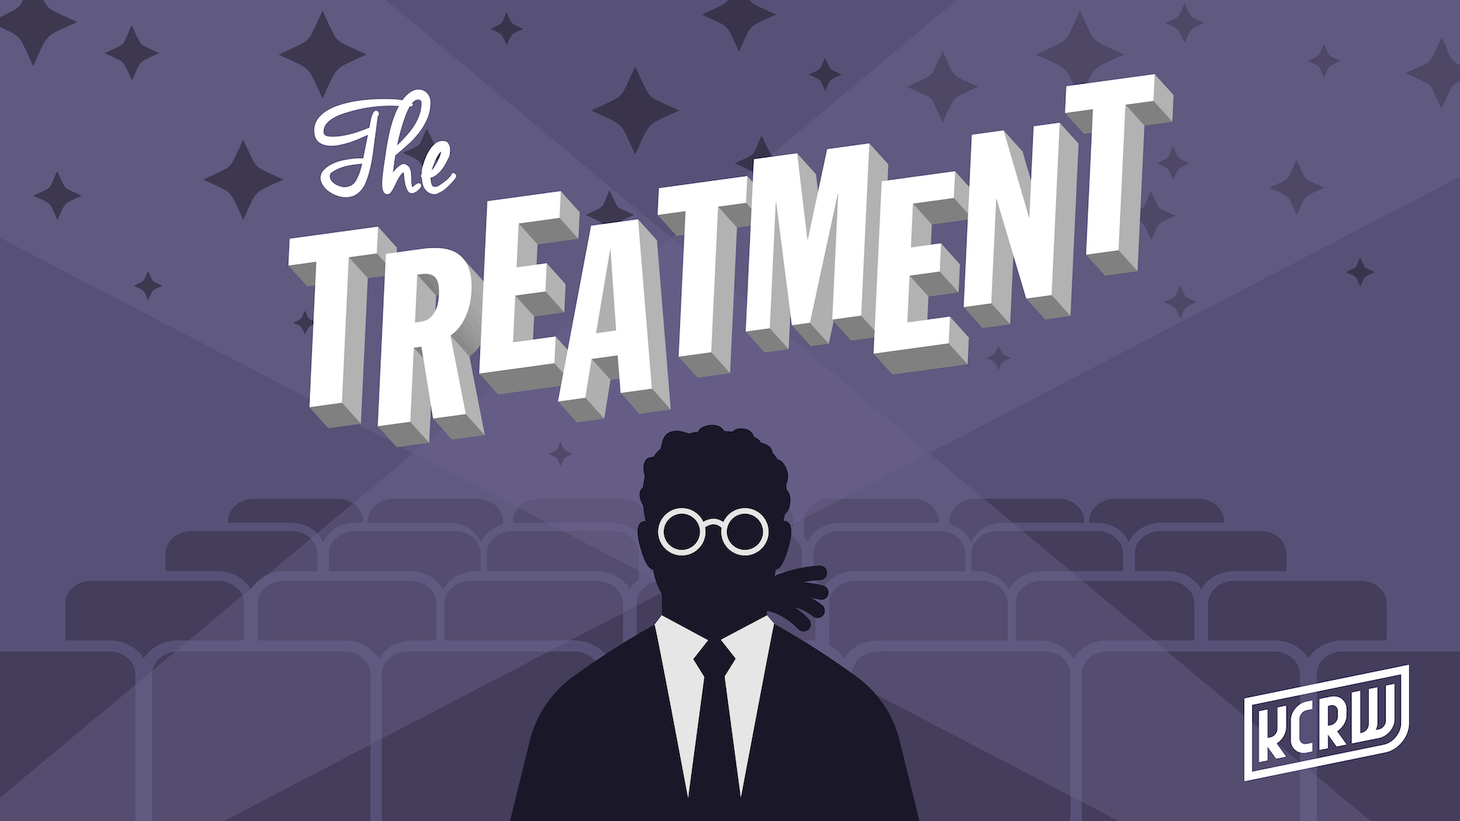 The Treatment celebrates 10 years on the air this April with a special month of programming.  Our 10-year anniversary month features new interviews with favorite past guests, discussing new projects and their careers.  This week, Elvis hosts the award-winning David Mamet (House of Games, Glengarry Glen Ross, The Spanish Prisoner, State and Main).  The playwright's terse swift body of work has made him one of the leading figures of the American theatre. He's change the face of film by marrying his speedy lucid style to screenwriting, and he's now come to the small screen by creating the TV show The Unit.  Hear about getting a weekly dose of Mamet.